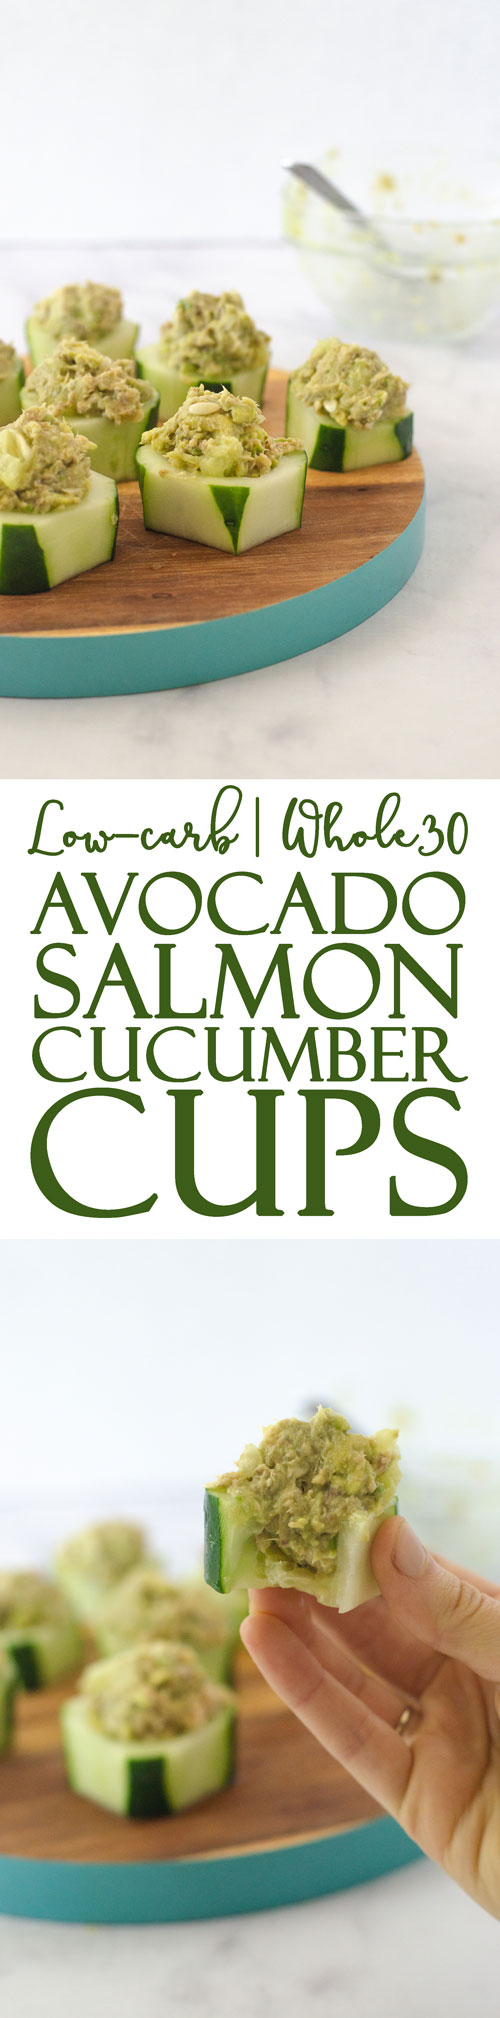 These avocado salmon cucumber cups are a super simple and quick appetizer, perfect for a party snack or a 5 minute lunch! Gluten-free, grain-free, low-carb, ketogenic, dairy-free, Whole30, Paleo.